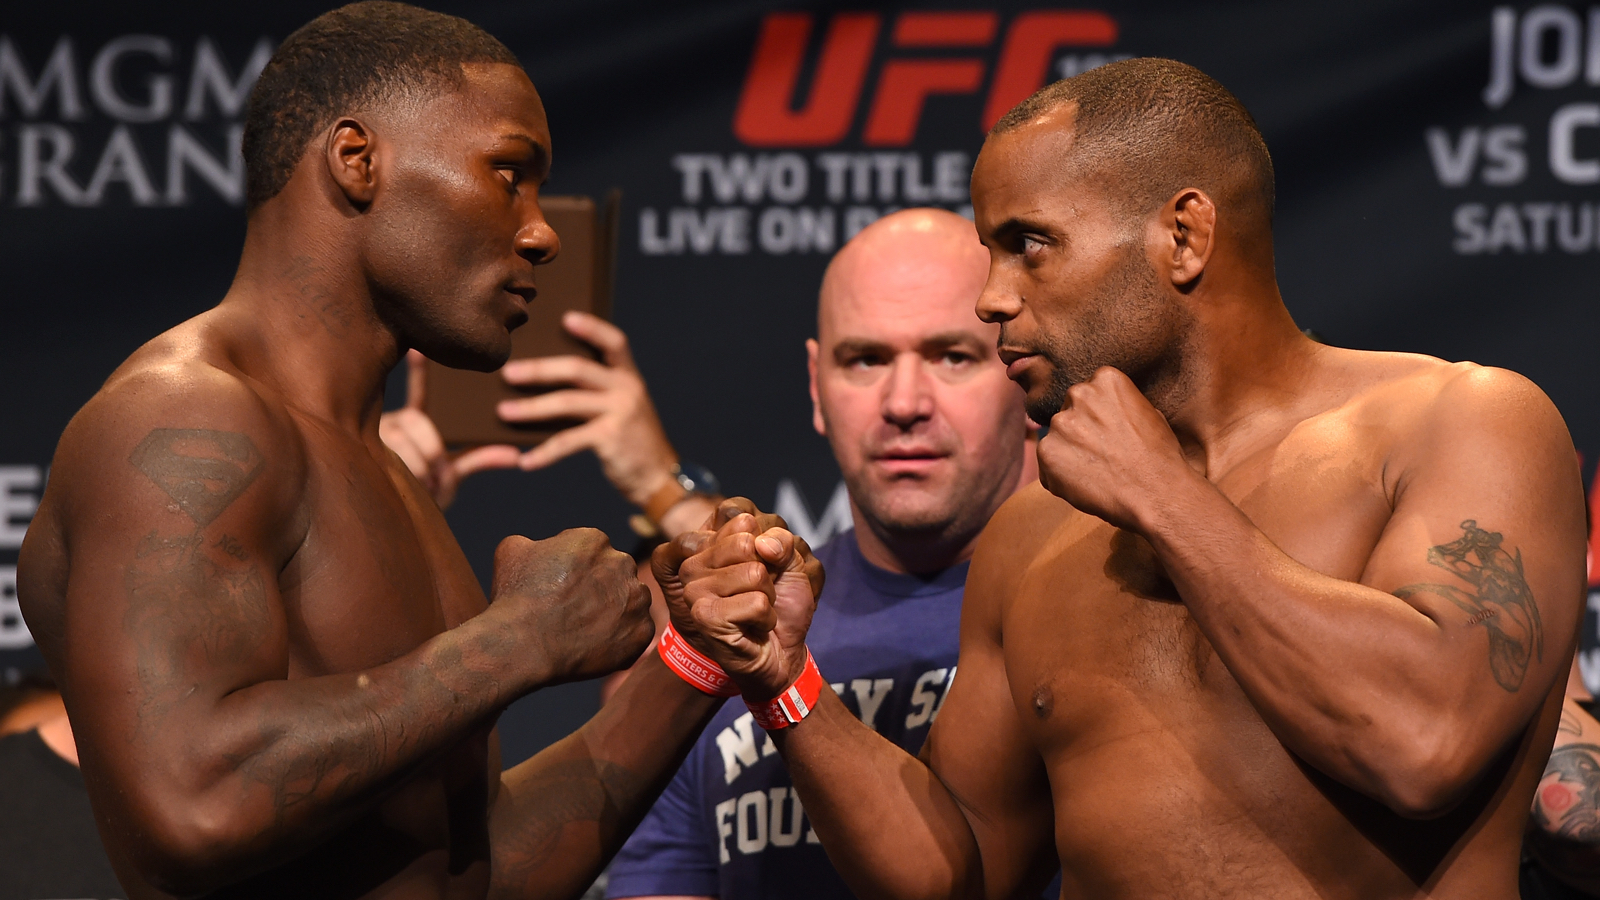 LAS VEGAS, NV - MAY 22:   (L-R) Opponents Anthony 'Rumble' Johnson and Daniel Cormier face off during the UFC 187 weigh-in at the MGM Grand Conference Center on May 22, 2015 in Las Vegas, Nevada. (Photo by Josh Hedges/Zuffa LLC/Zuffa LLC via Getty Images)